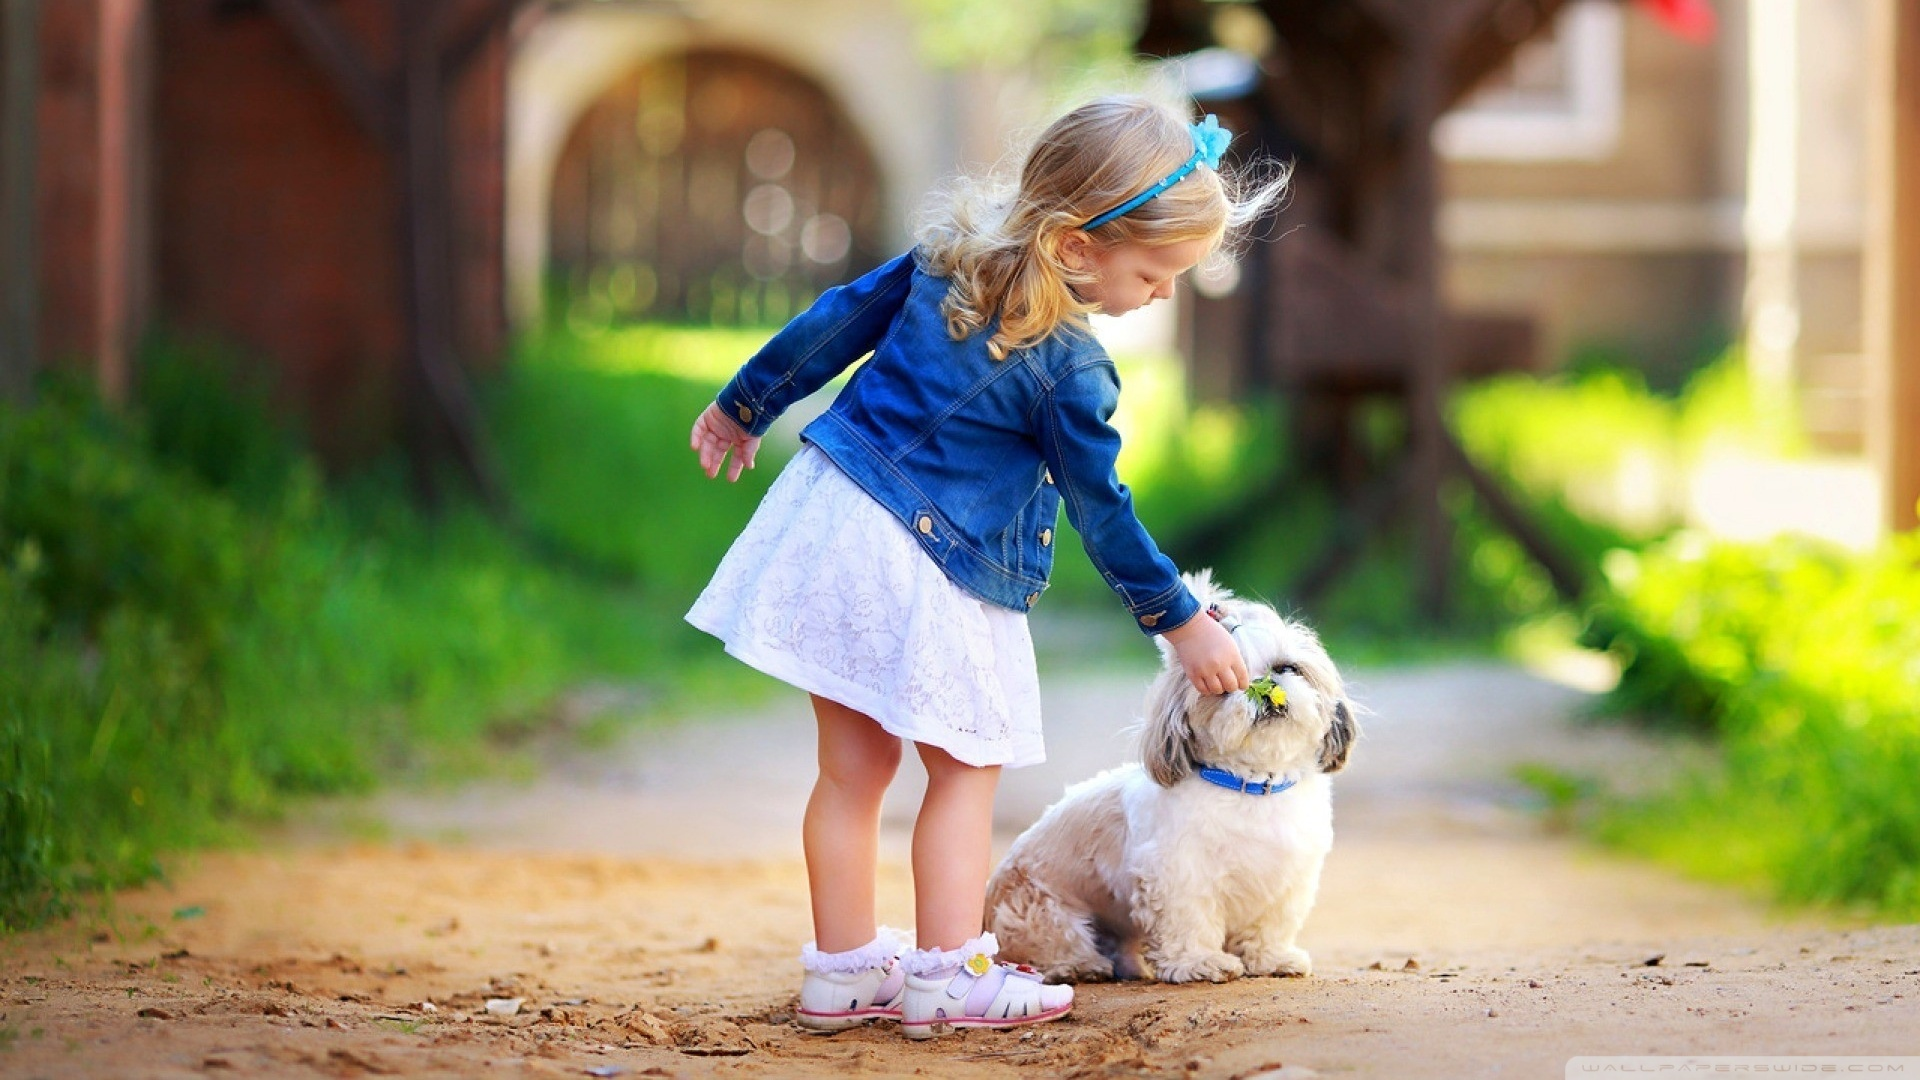 Download Free WallpaperGirl And Dog